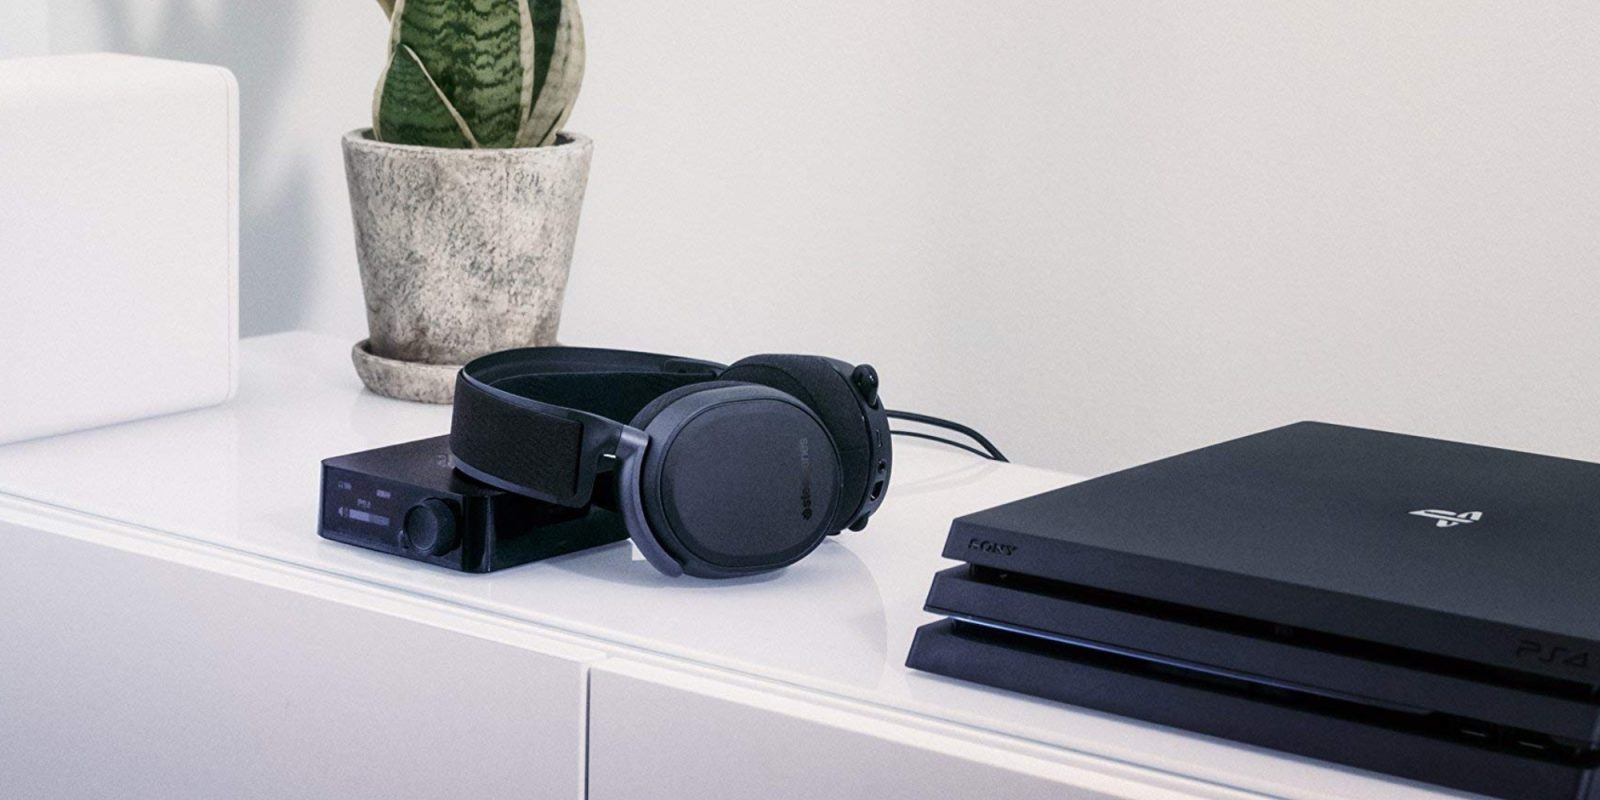 Pair your PS4 with SteelSeries' Arctis Pro Wireless Gaming